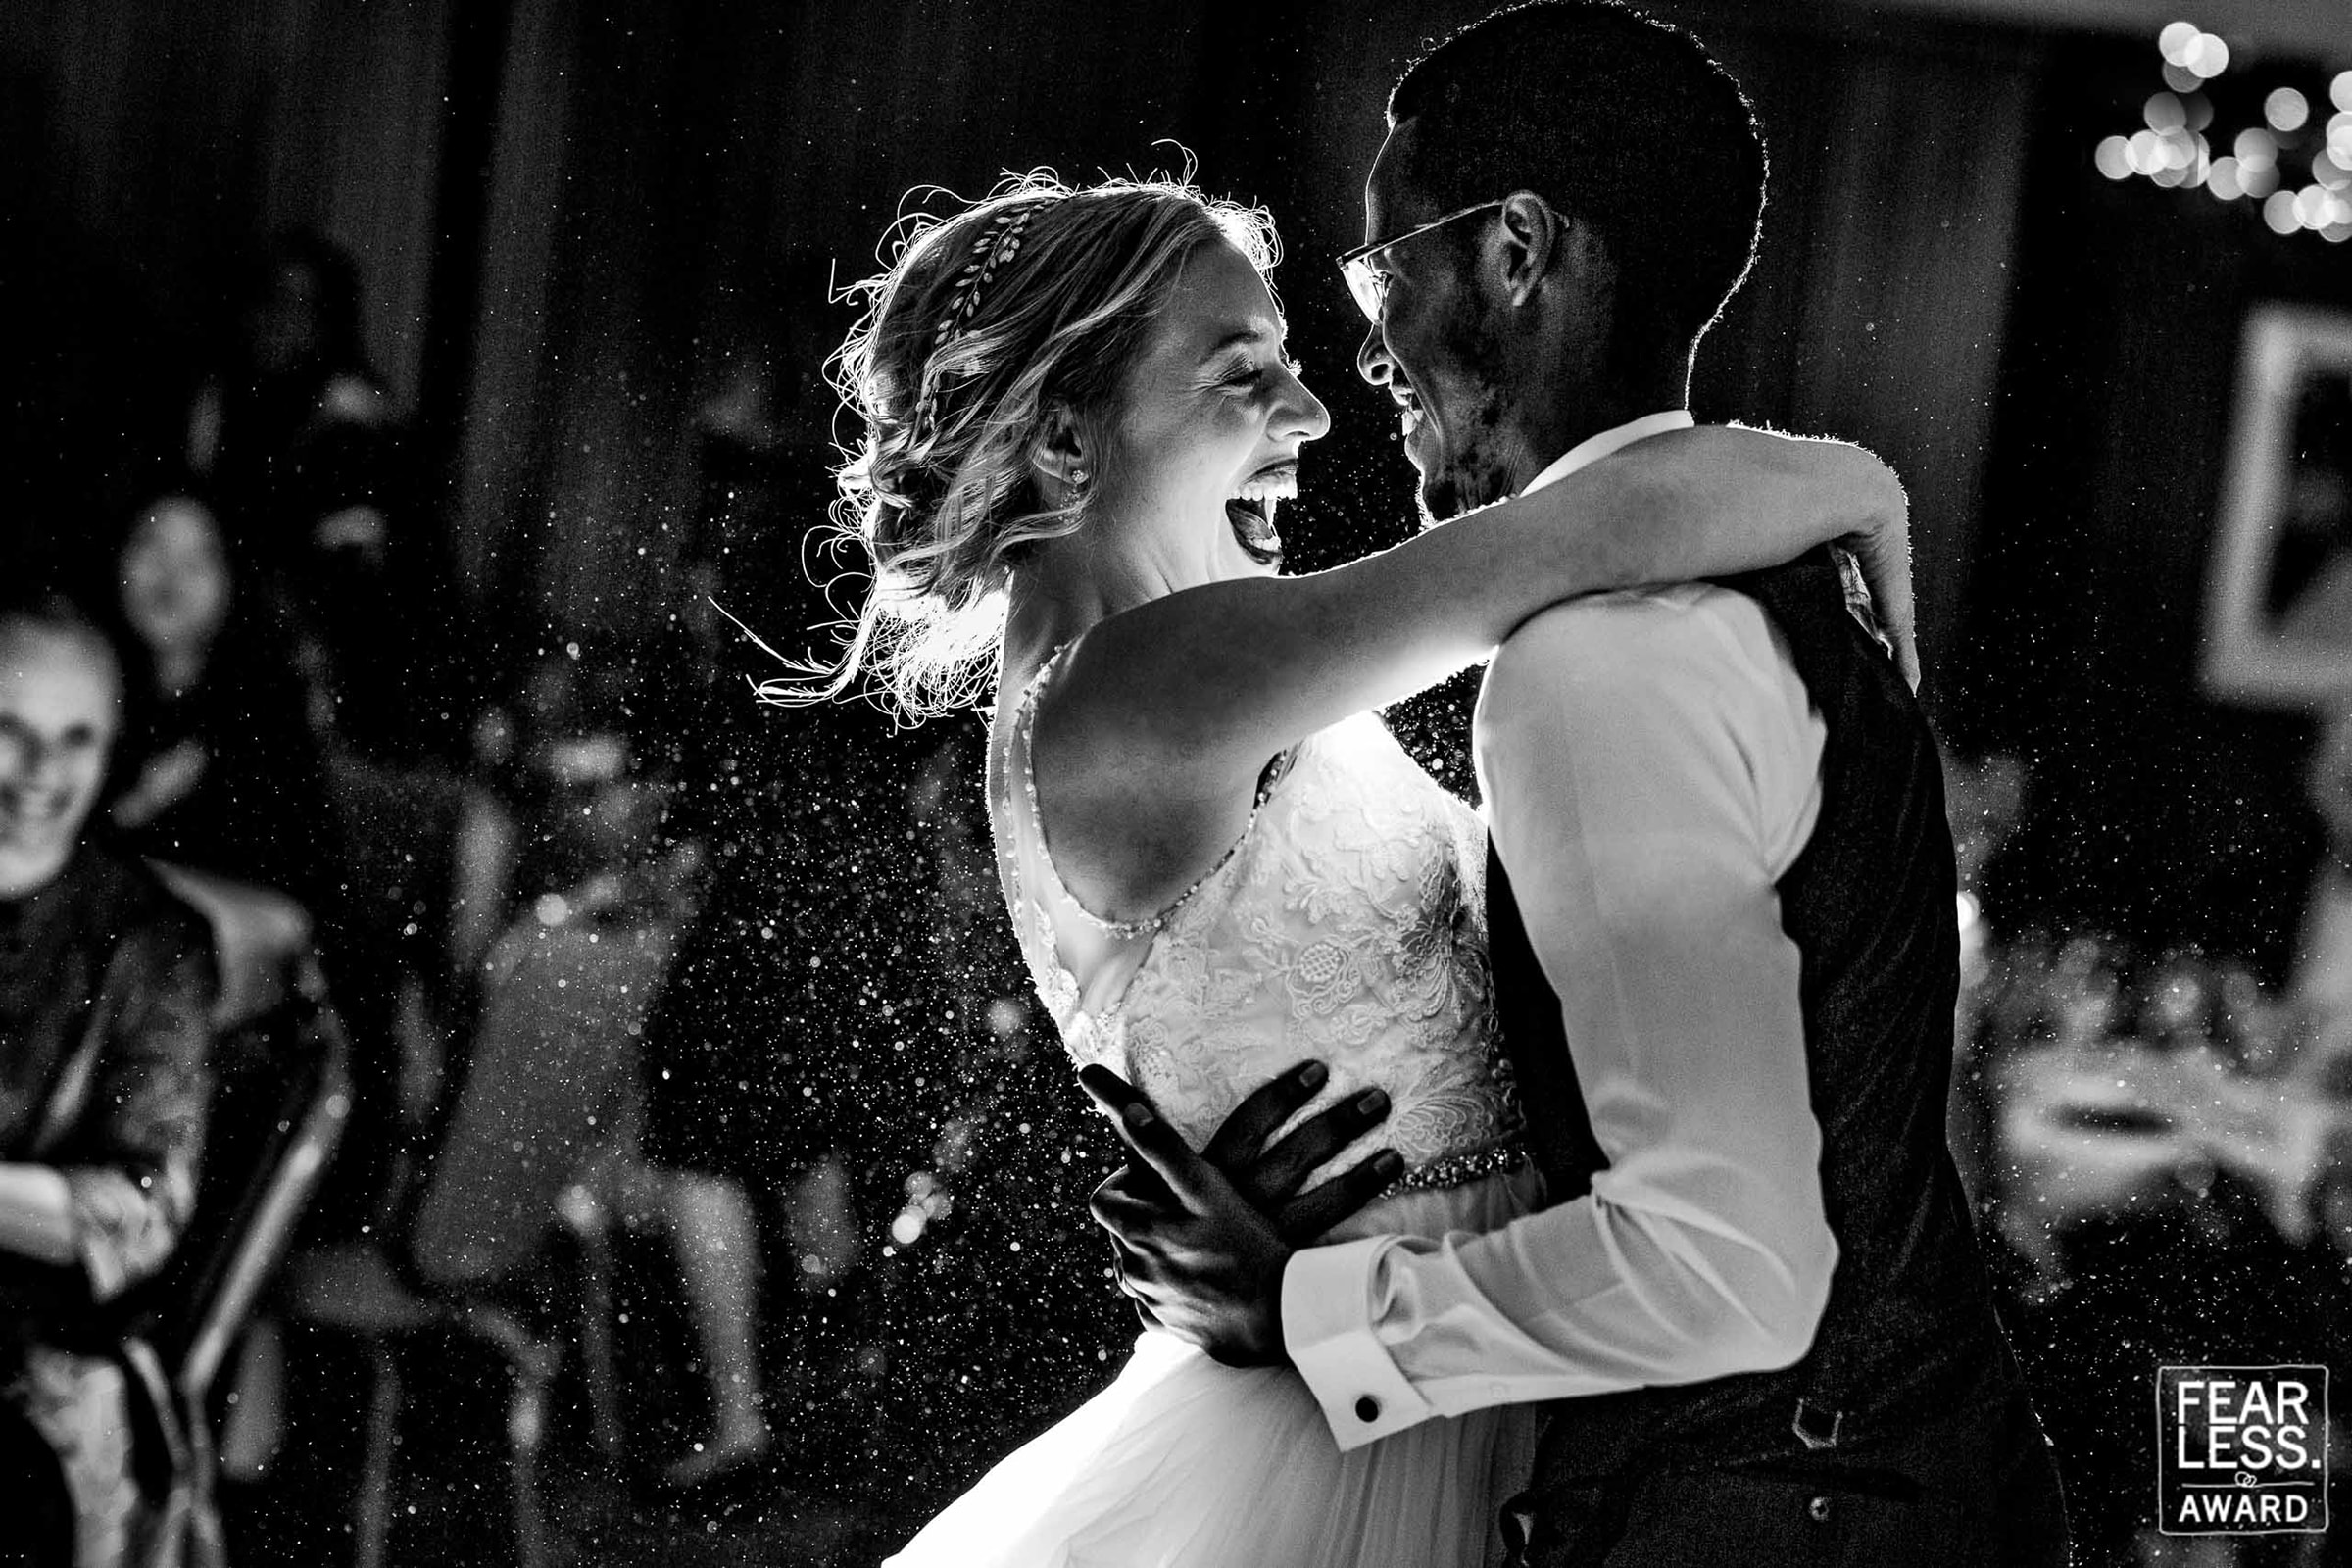 Fearless Photographers Award winning photo of a bride and groom first dance during their Timberline Lodge Wedding on Mt Hood in Oregon